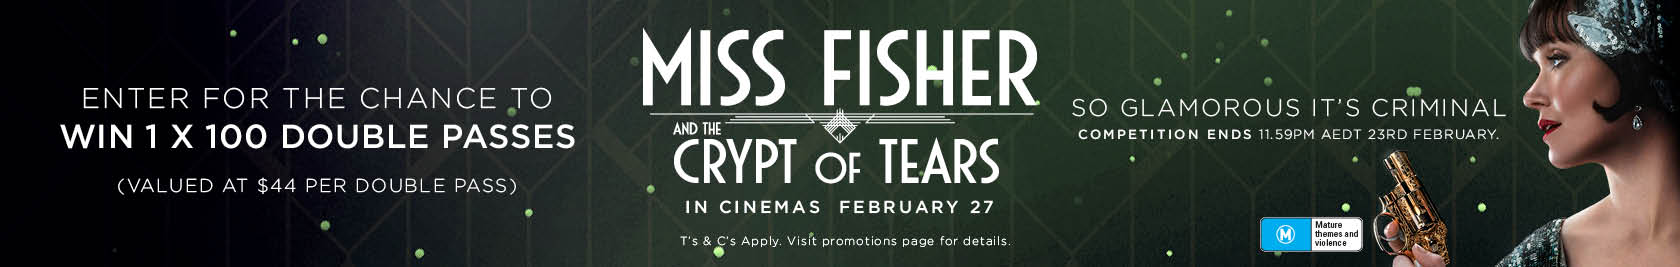 Miss Fisher Competition